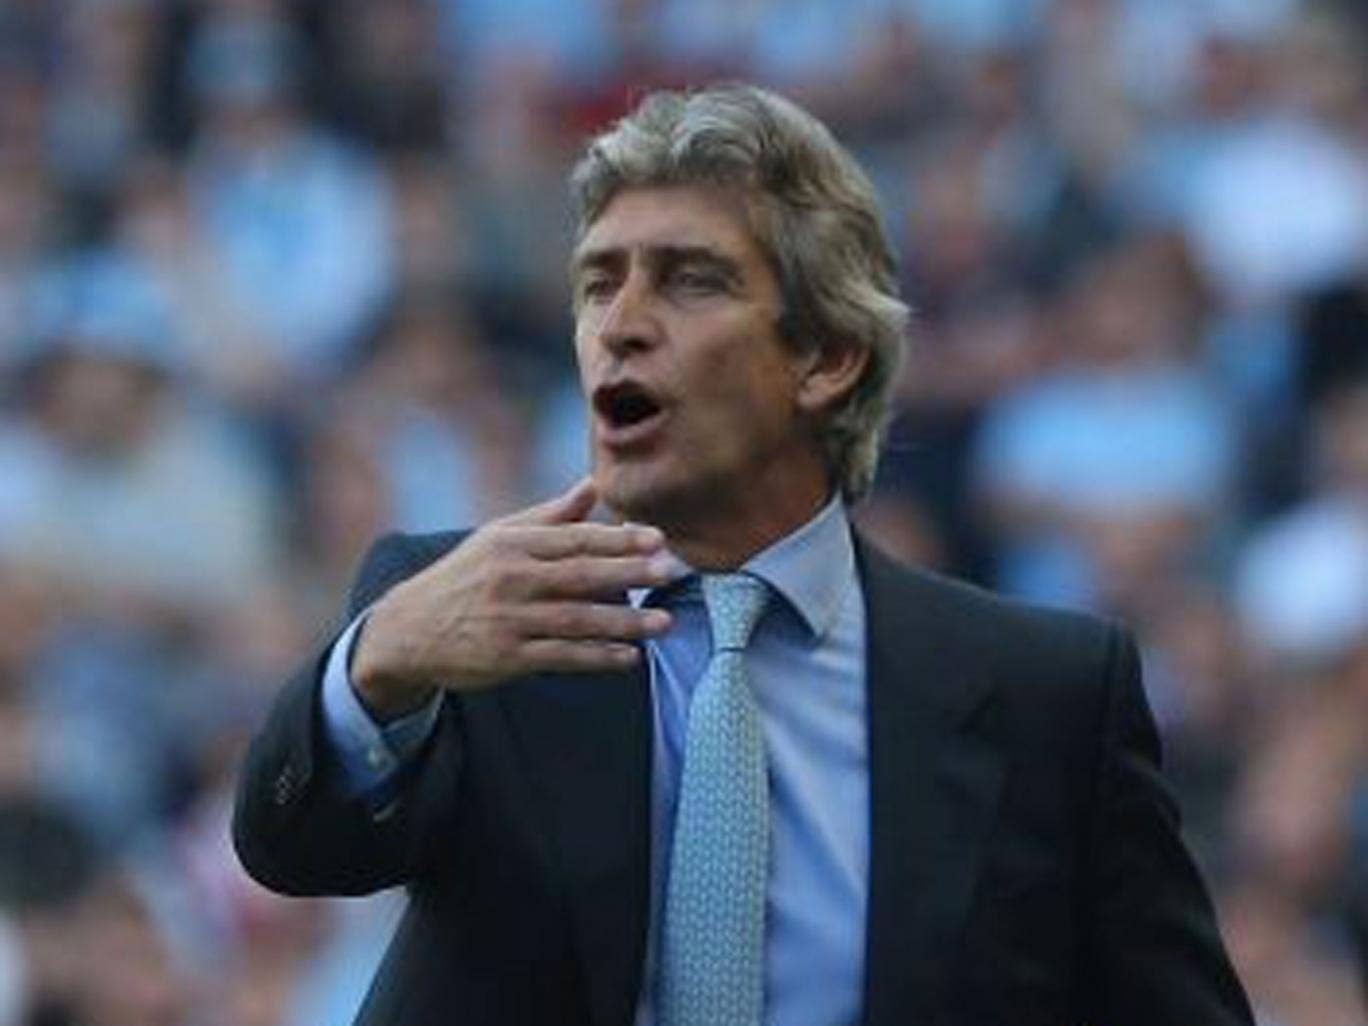 Manuel Pellegrini watches from the touchline during the Barclays Premier League match between Manchester City and Manchester United